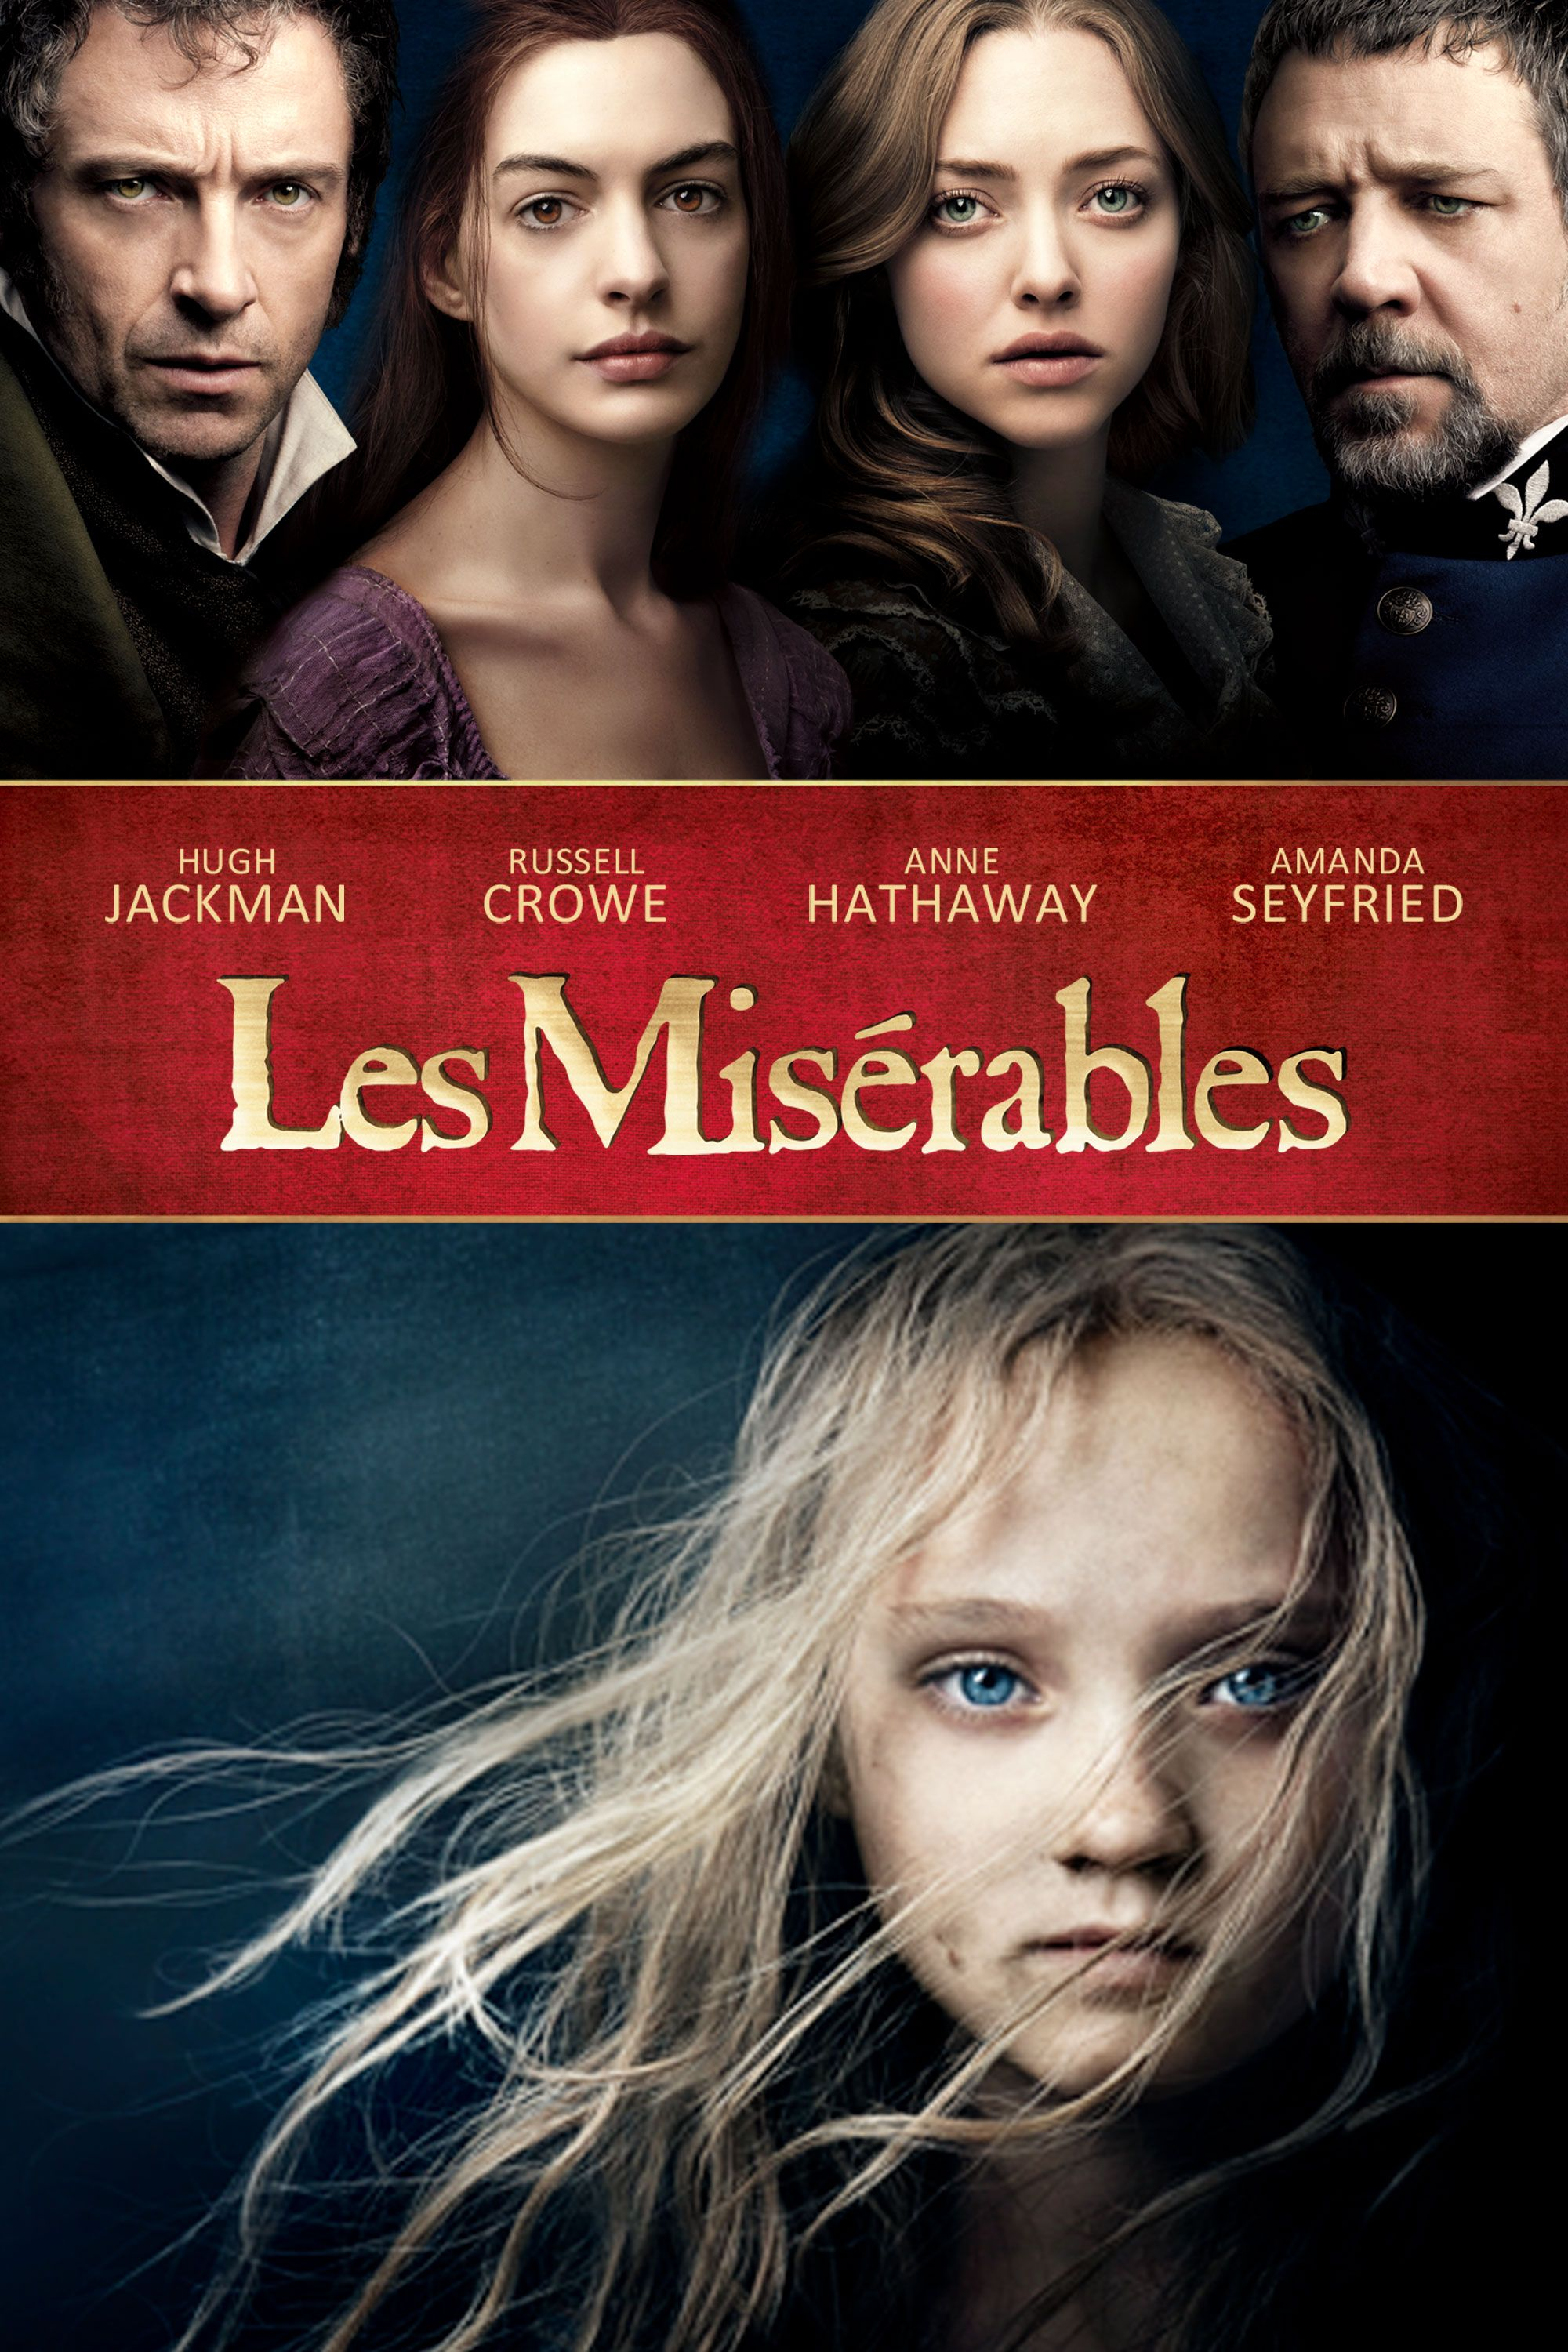 Les Miserables (2012) | Full Movie | Movies Anywhere